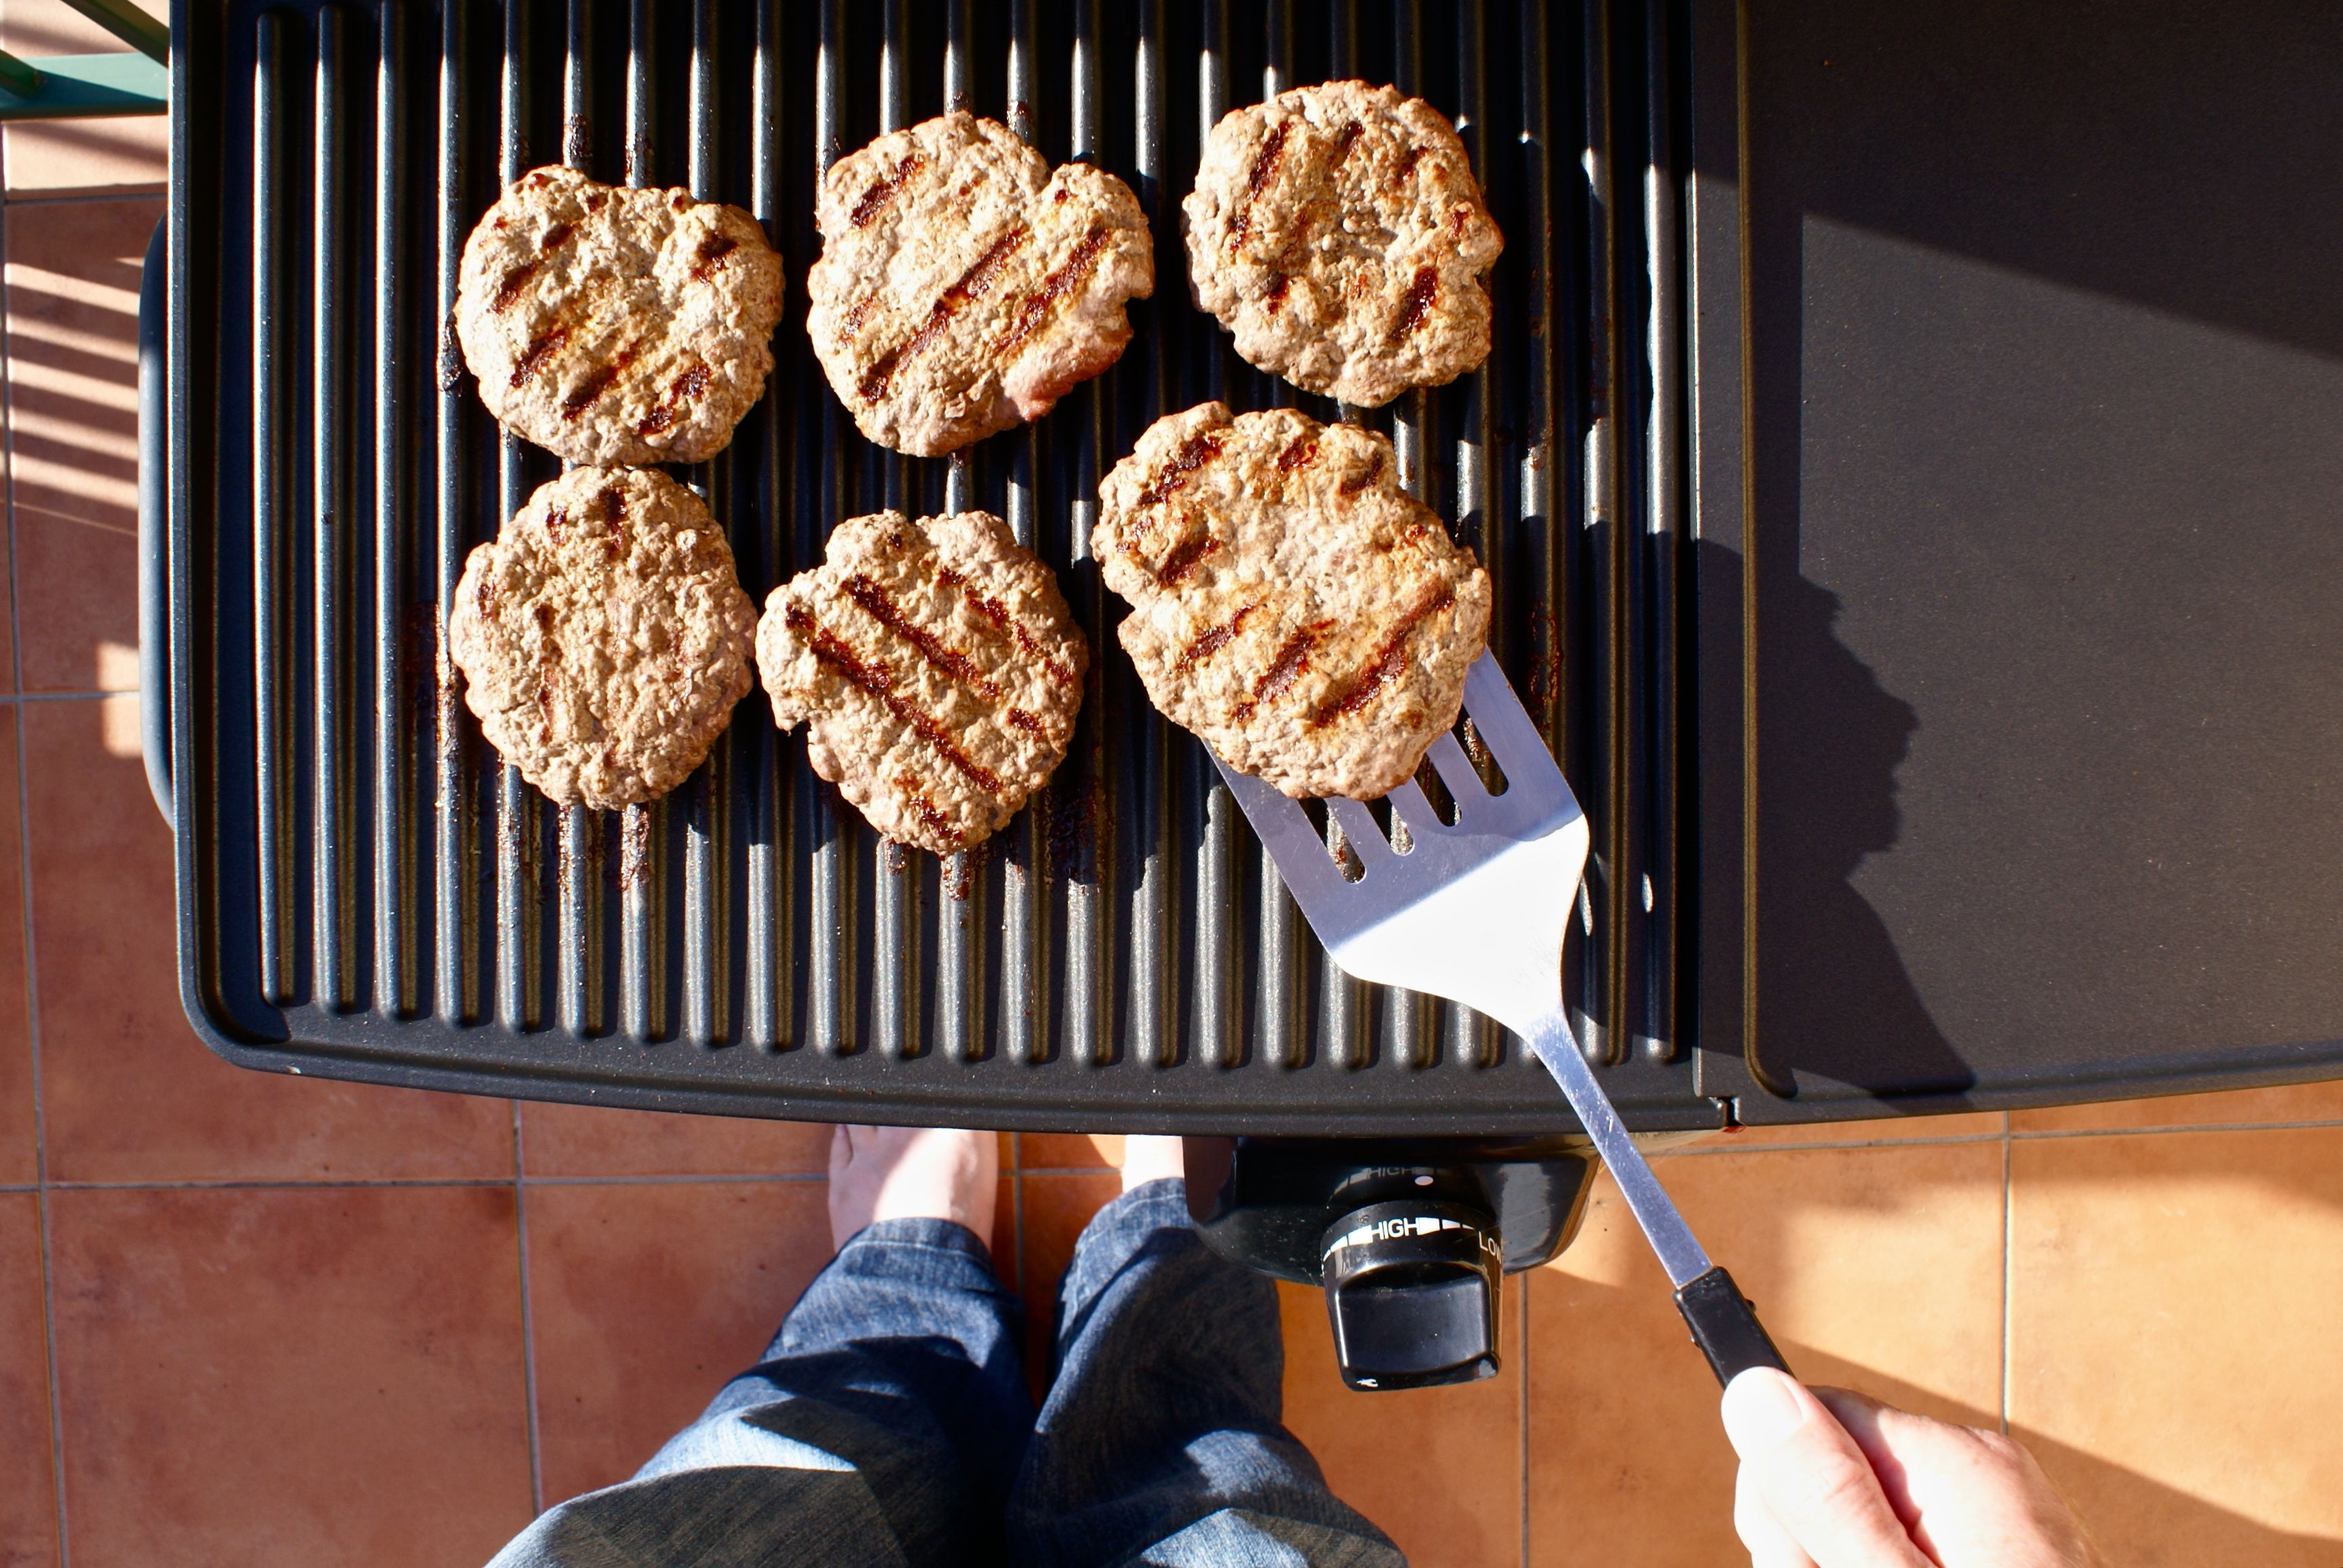 Person flipping burgers on a grill.